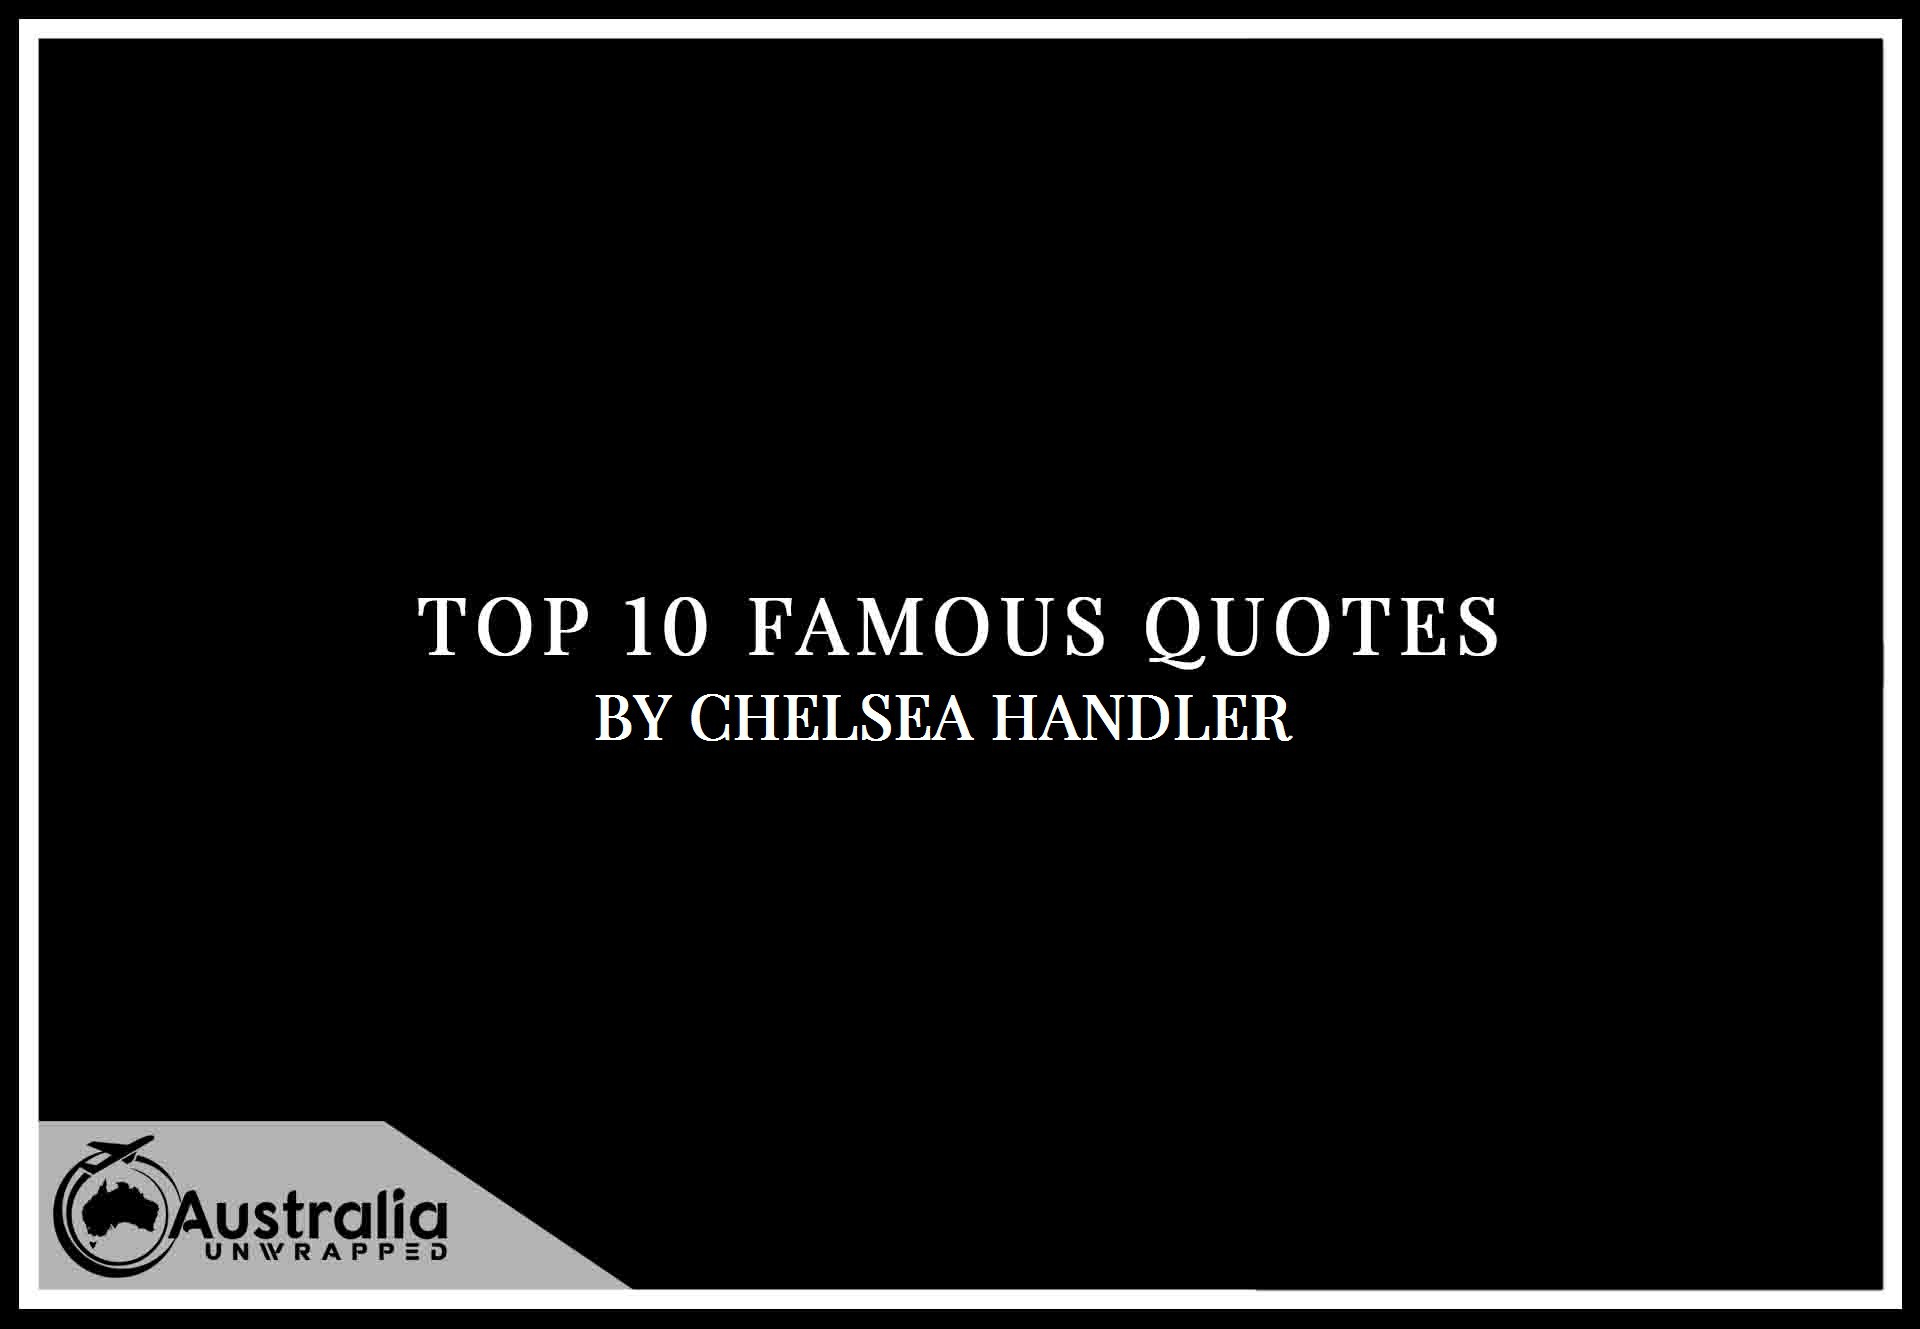 Chelsea Handler's Top 10 Popular and Famous Quotes